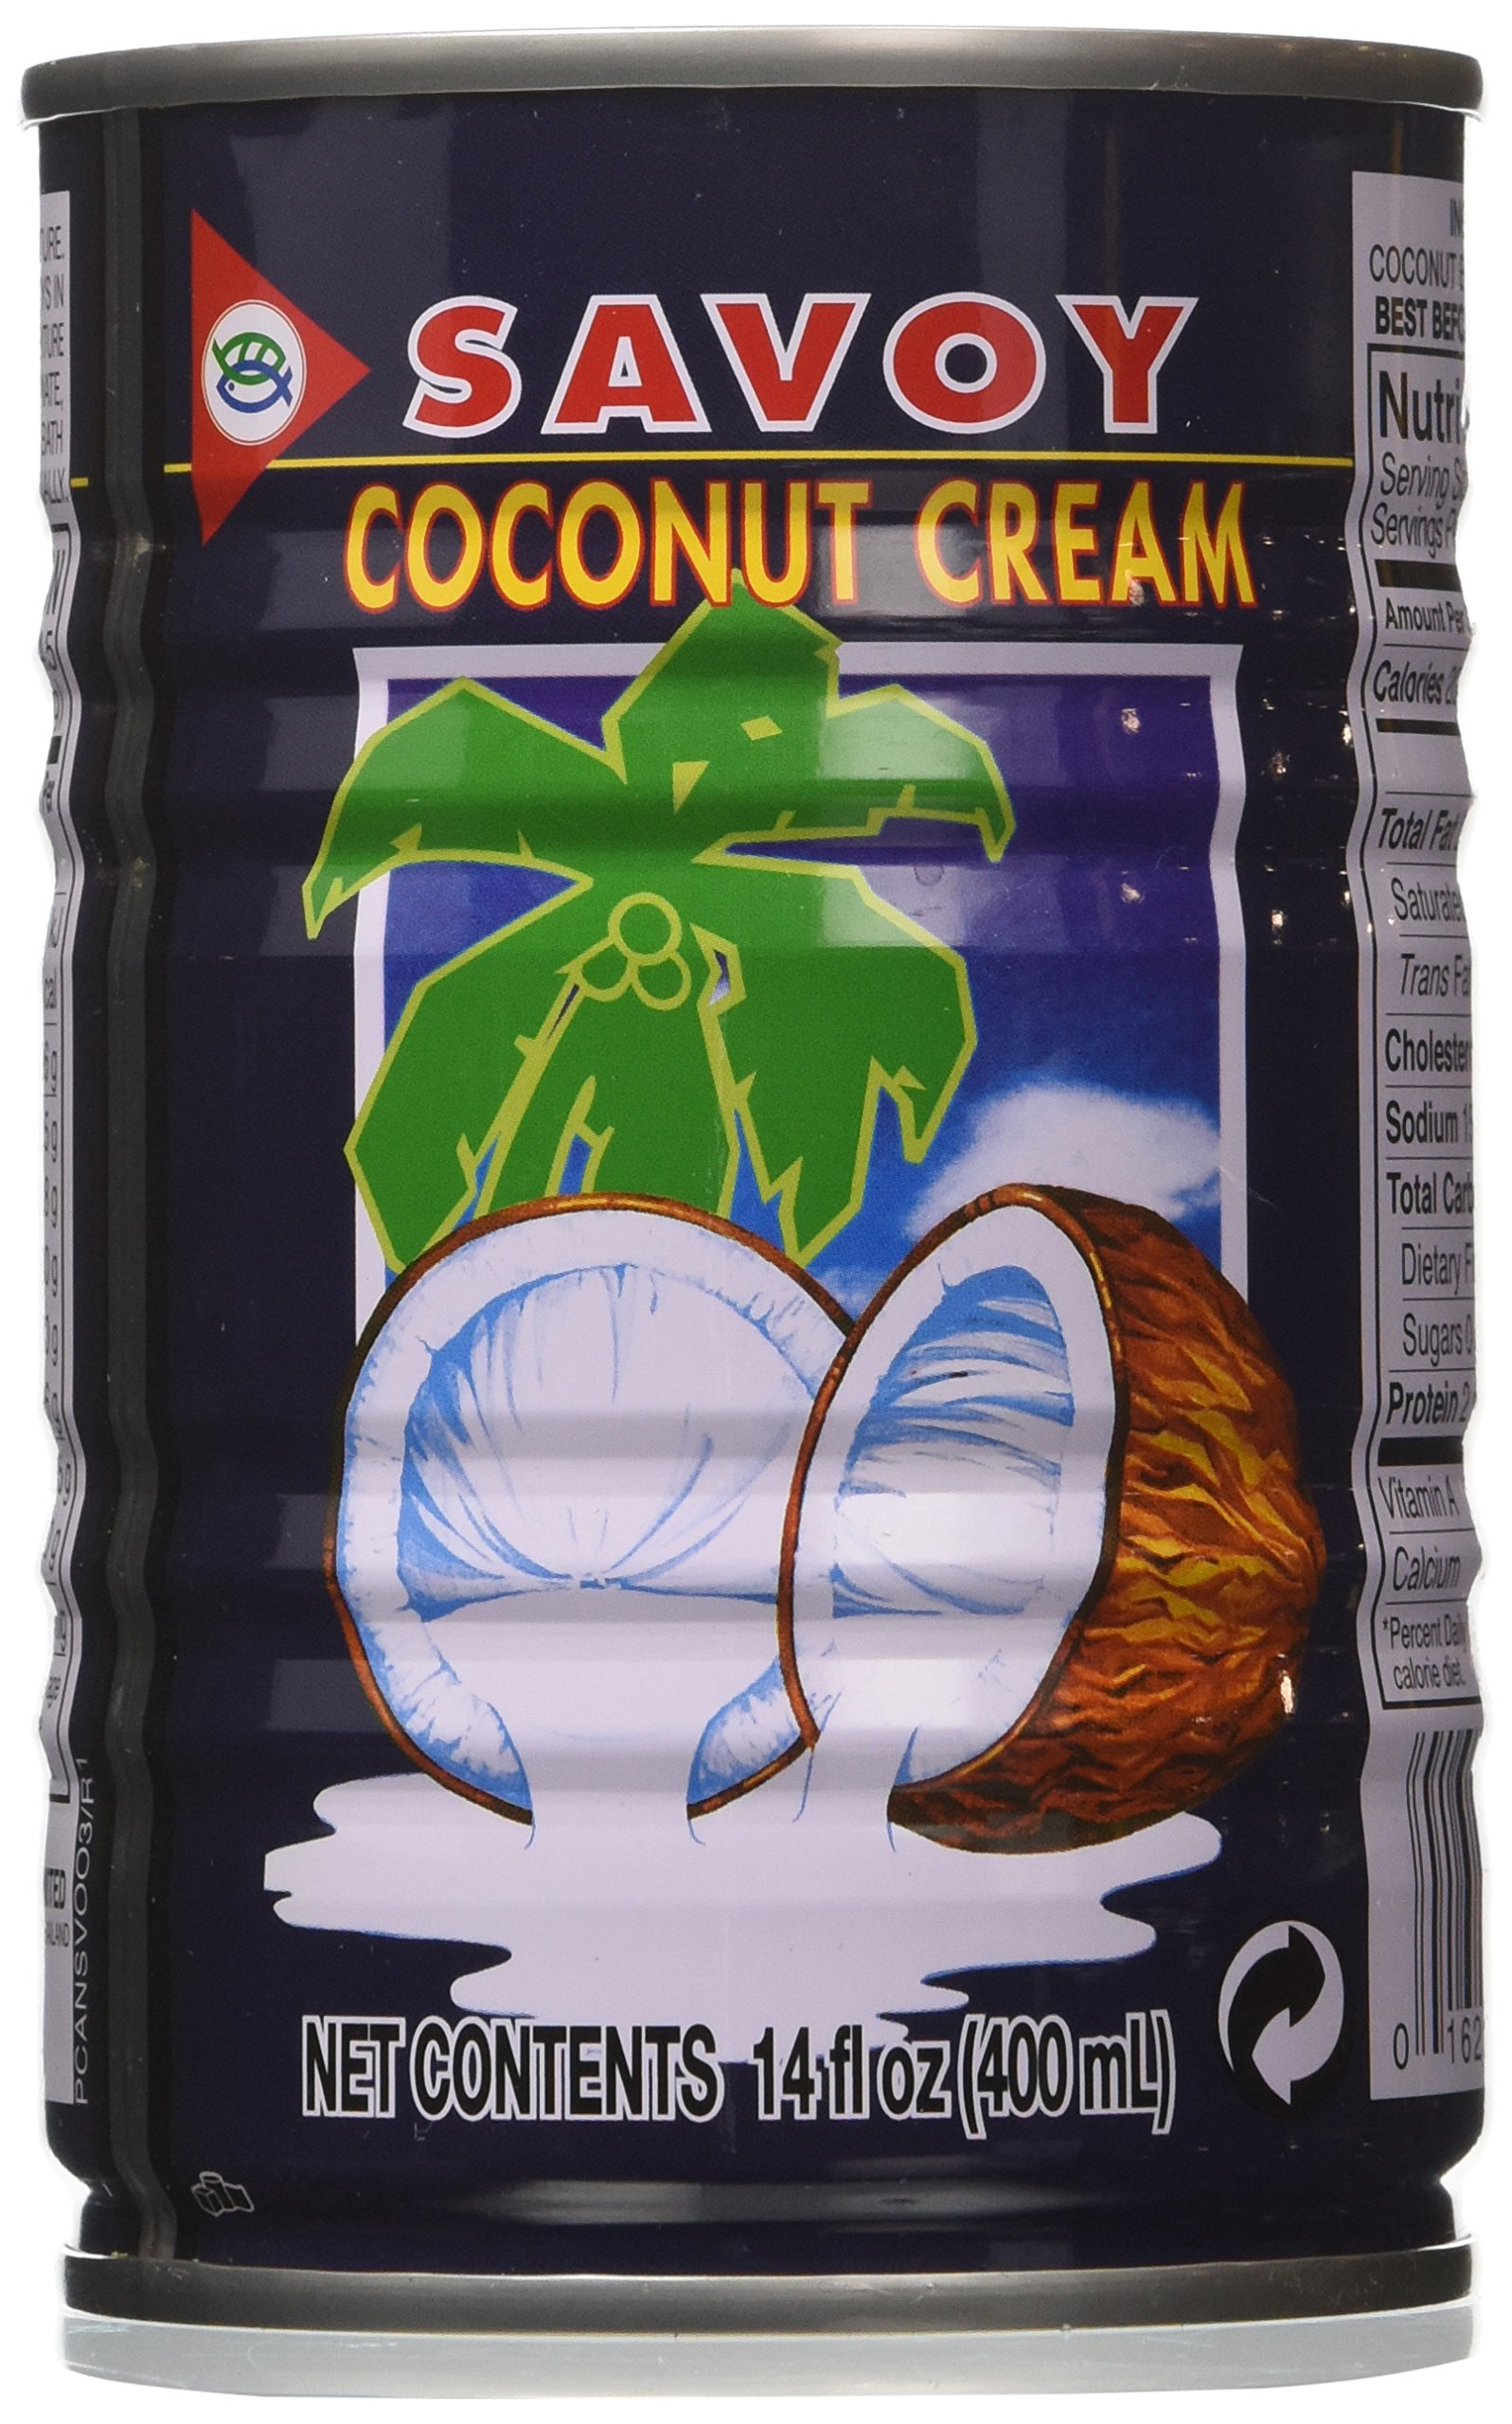 Savoy Coconut Cream 400ml Pack of 6